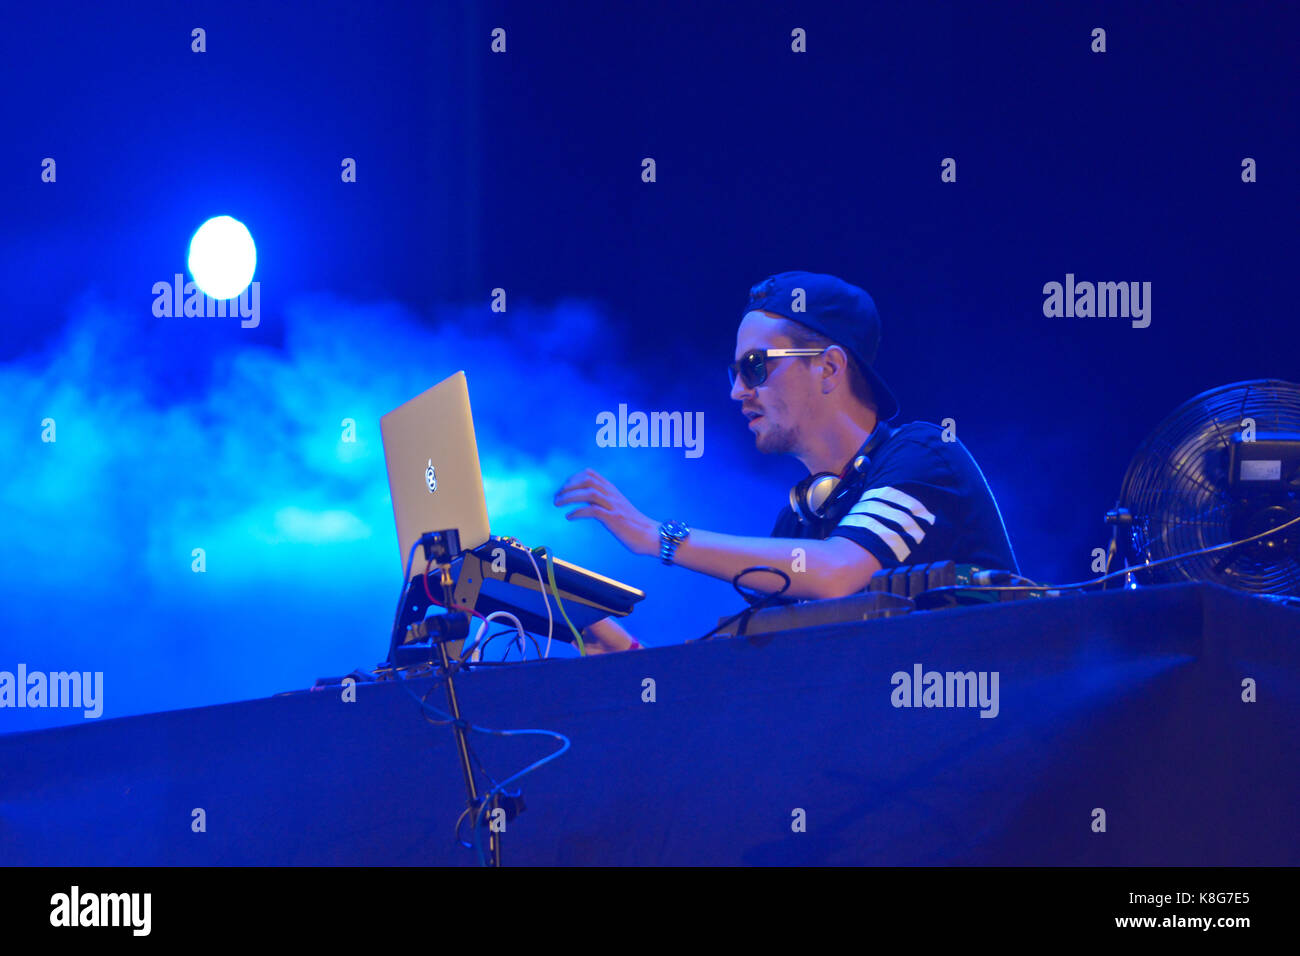 Robin Schulz, German DJ and producer, on the Waddington Peninsula in Rouen on the occasion of the free concerts - Stock Image